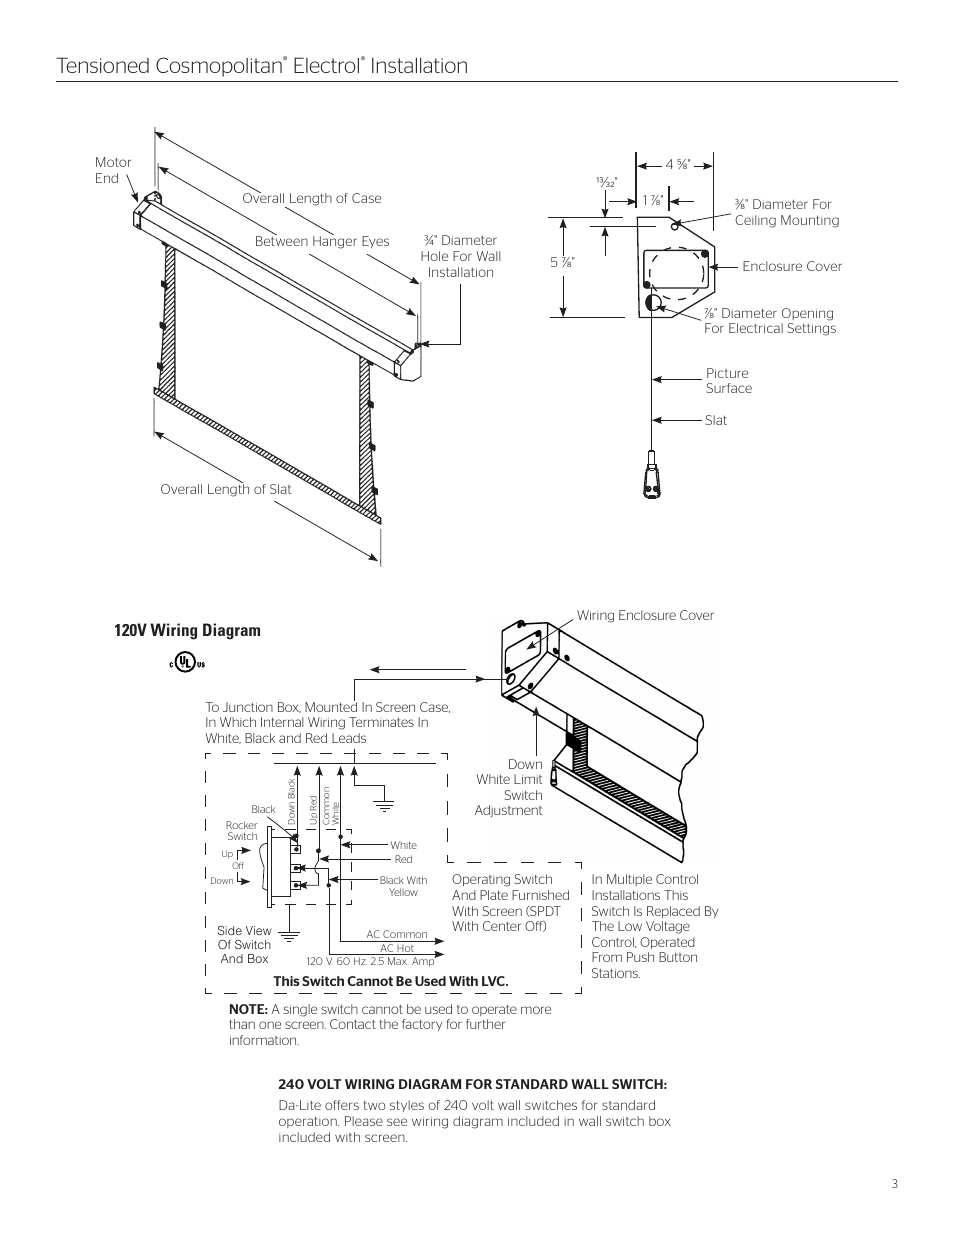 Tensioned Cosmopolitan Electrol Installation Da Lite Switch Box Electrical Schematic Wiring User Manual Page 3 8